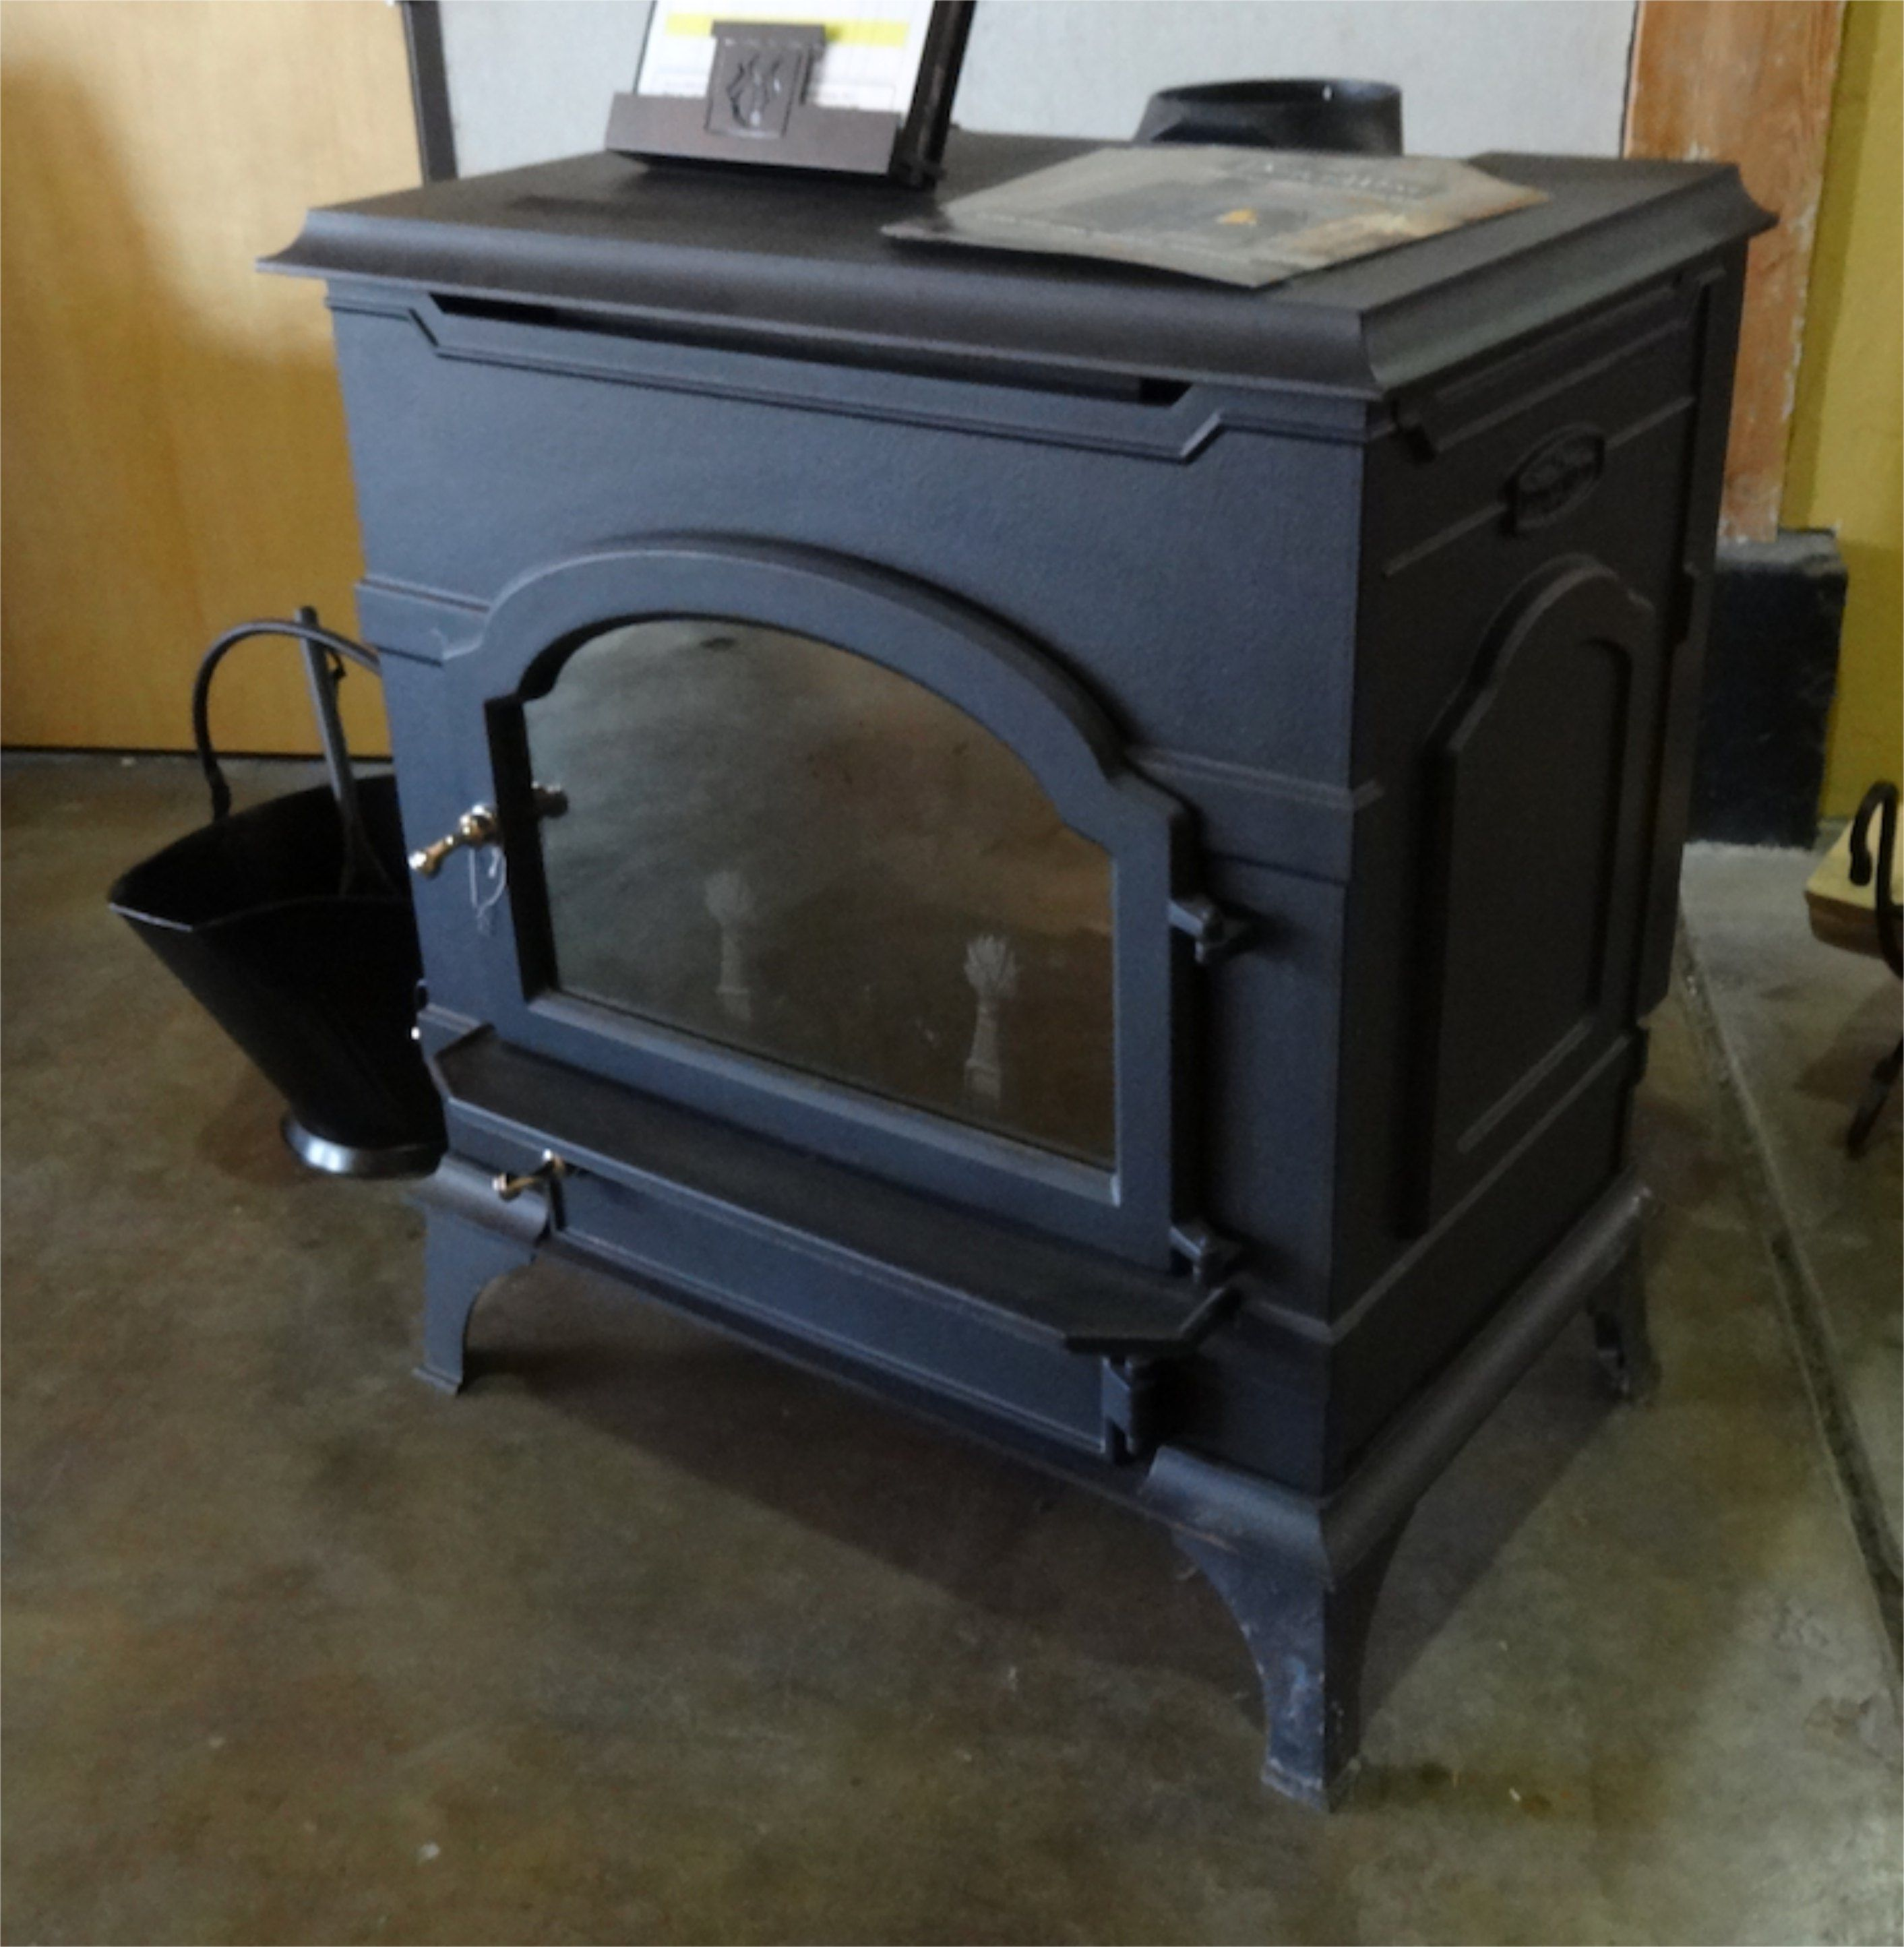 Great Wood Stove Just Be Sure To Lift With Your Legs Stove